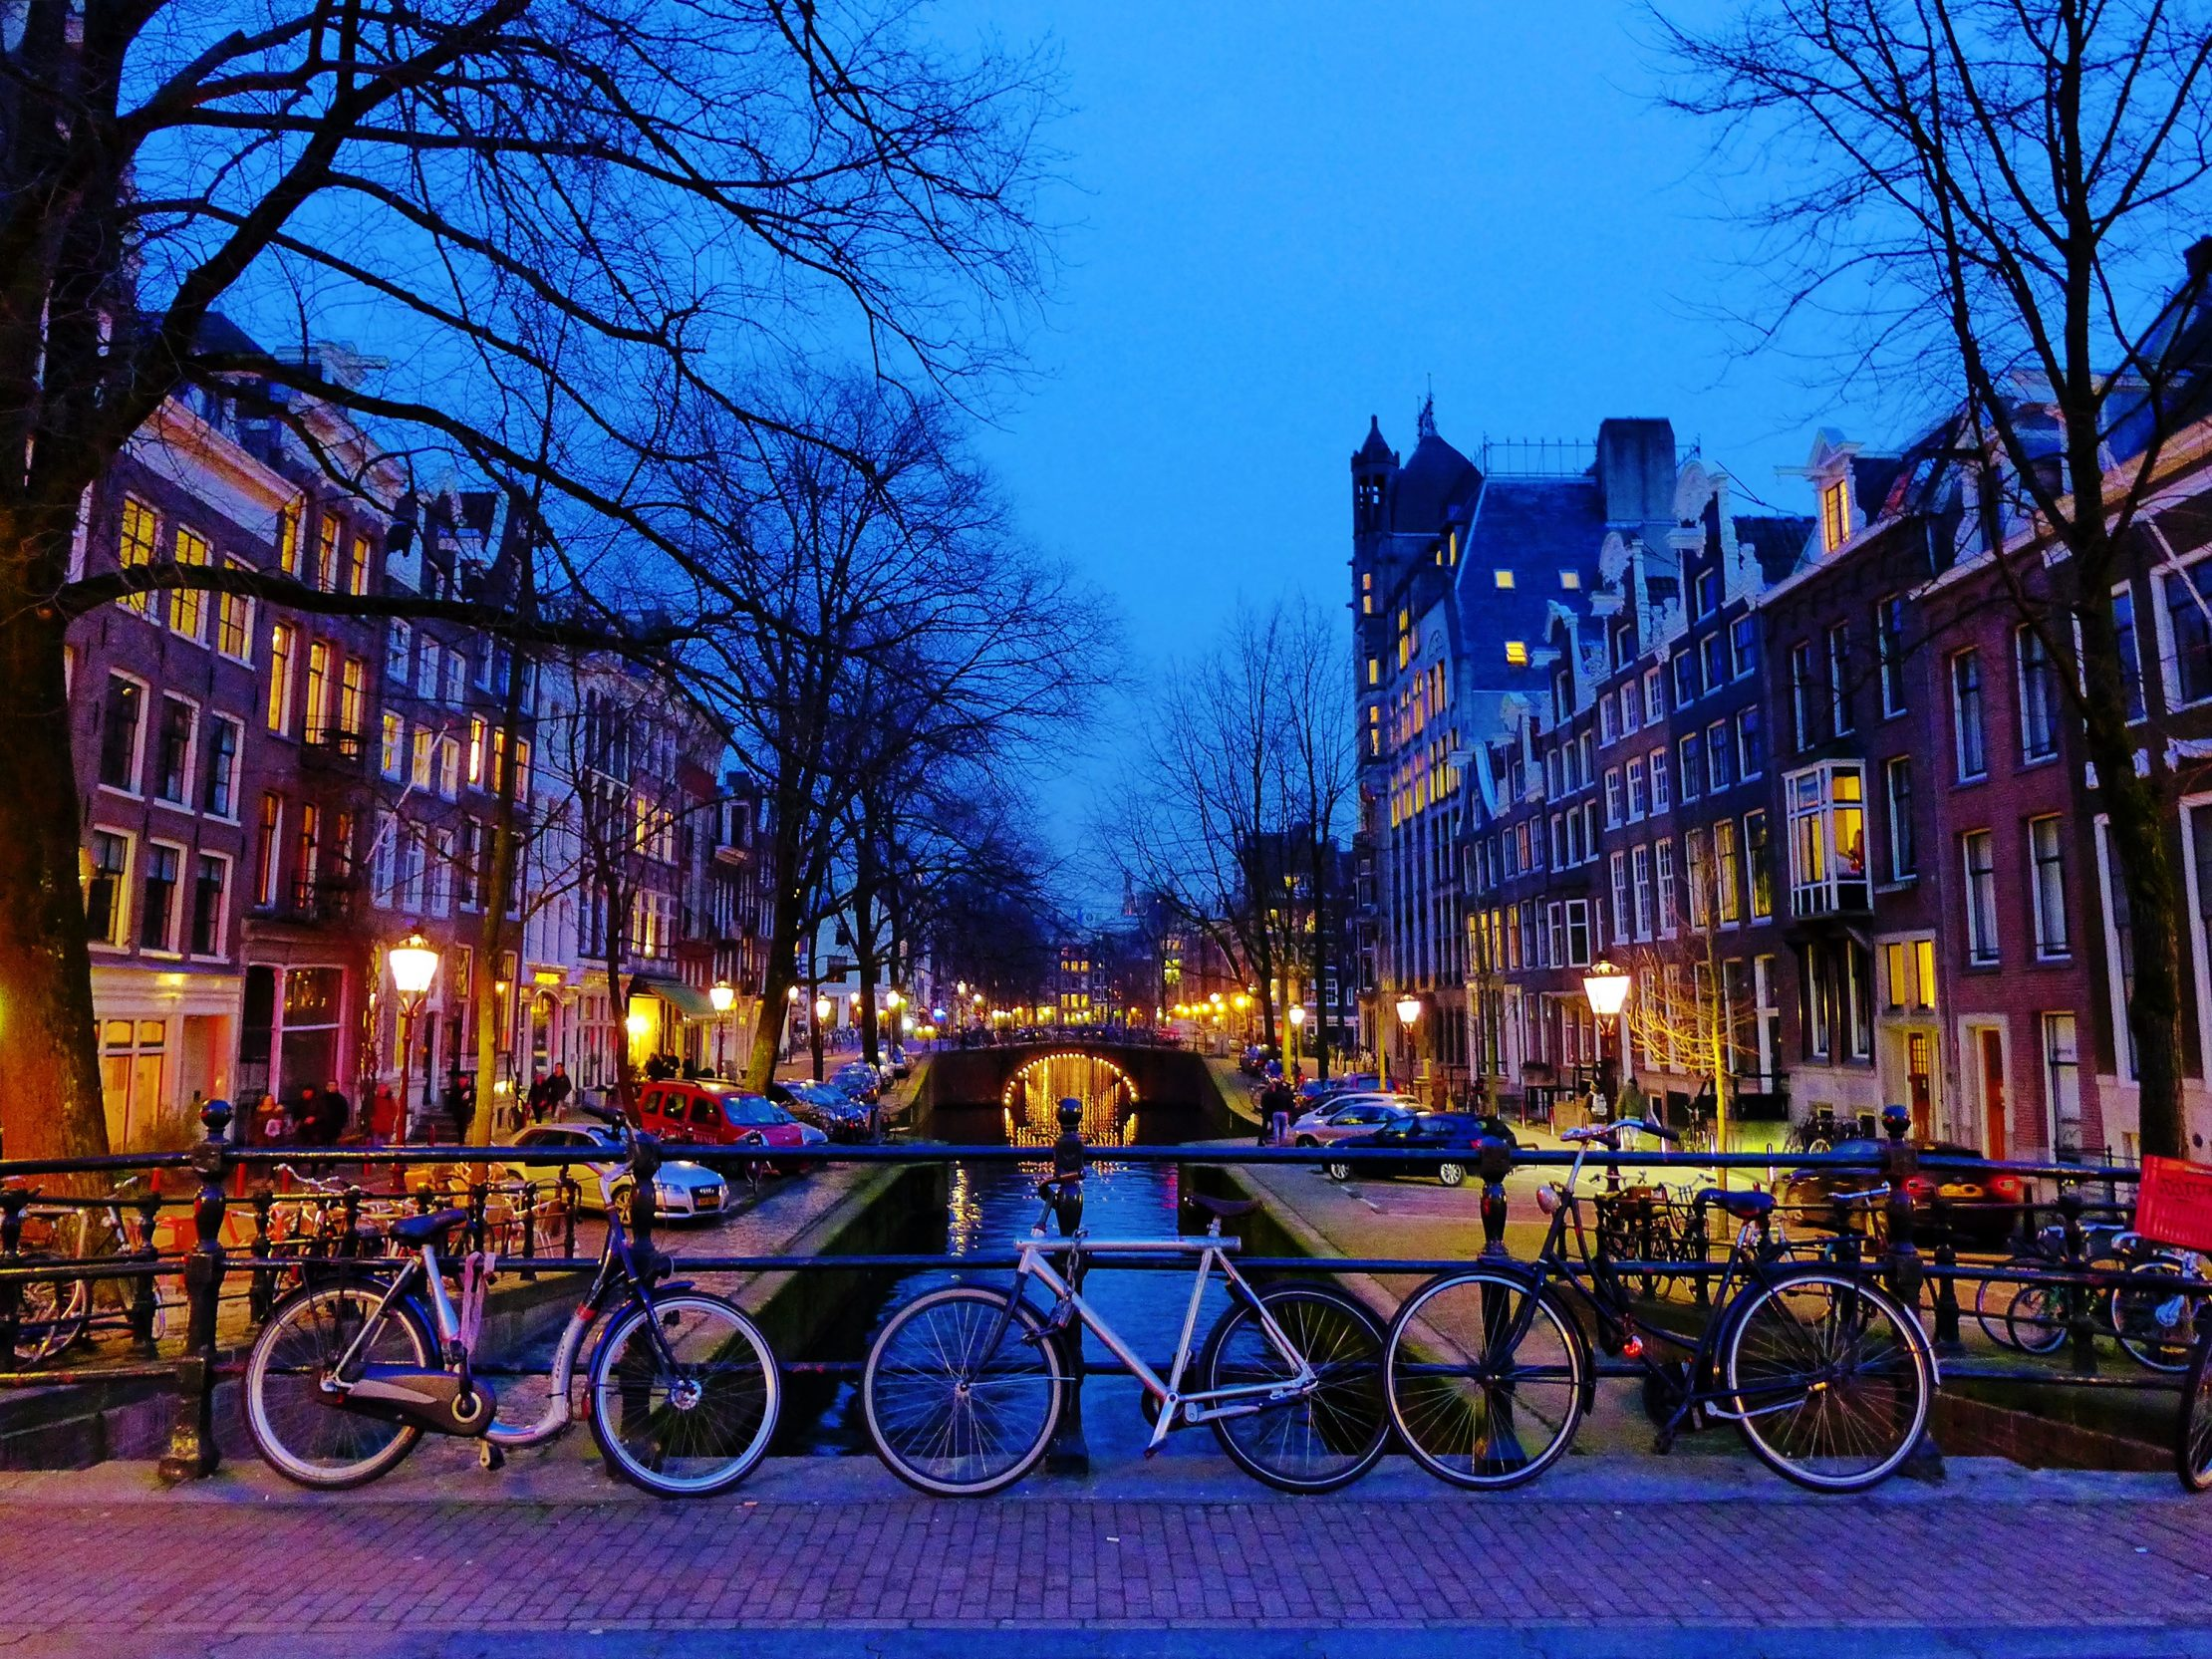 Biking around in Amsterdam